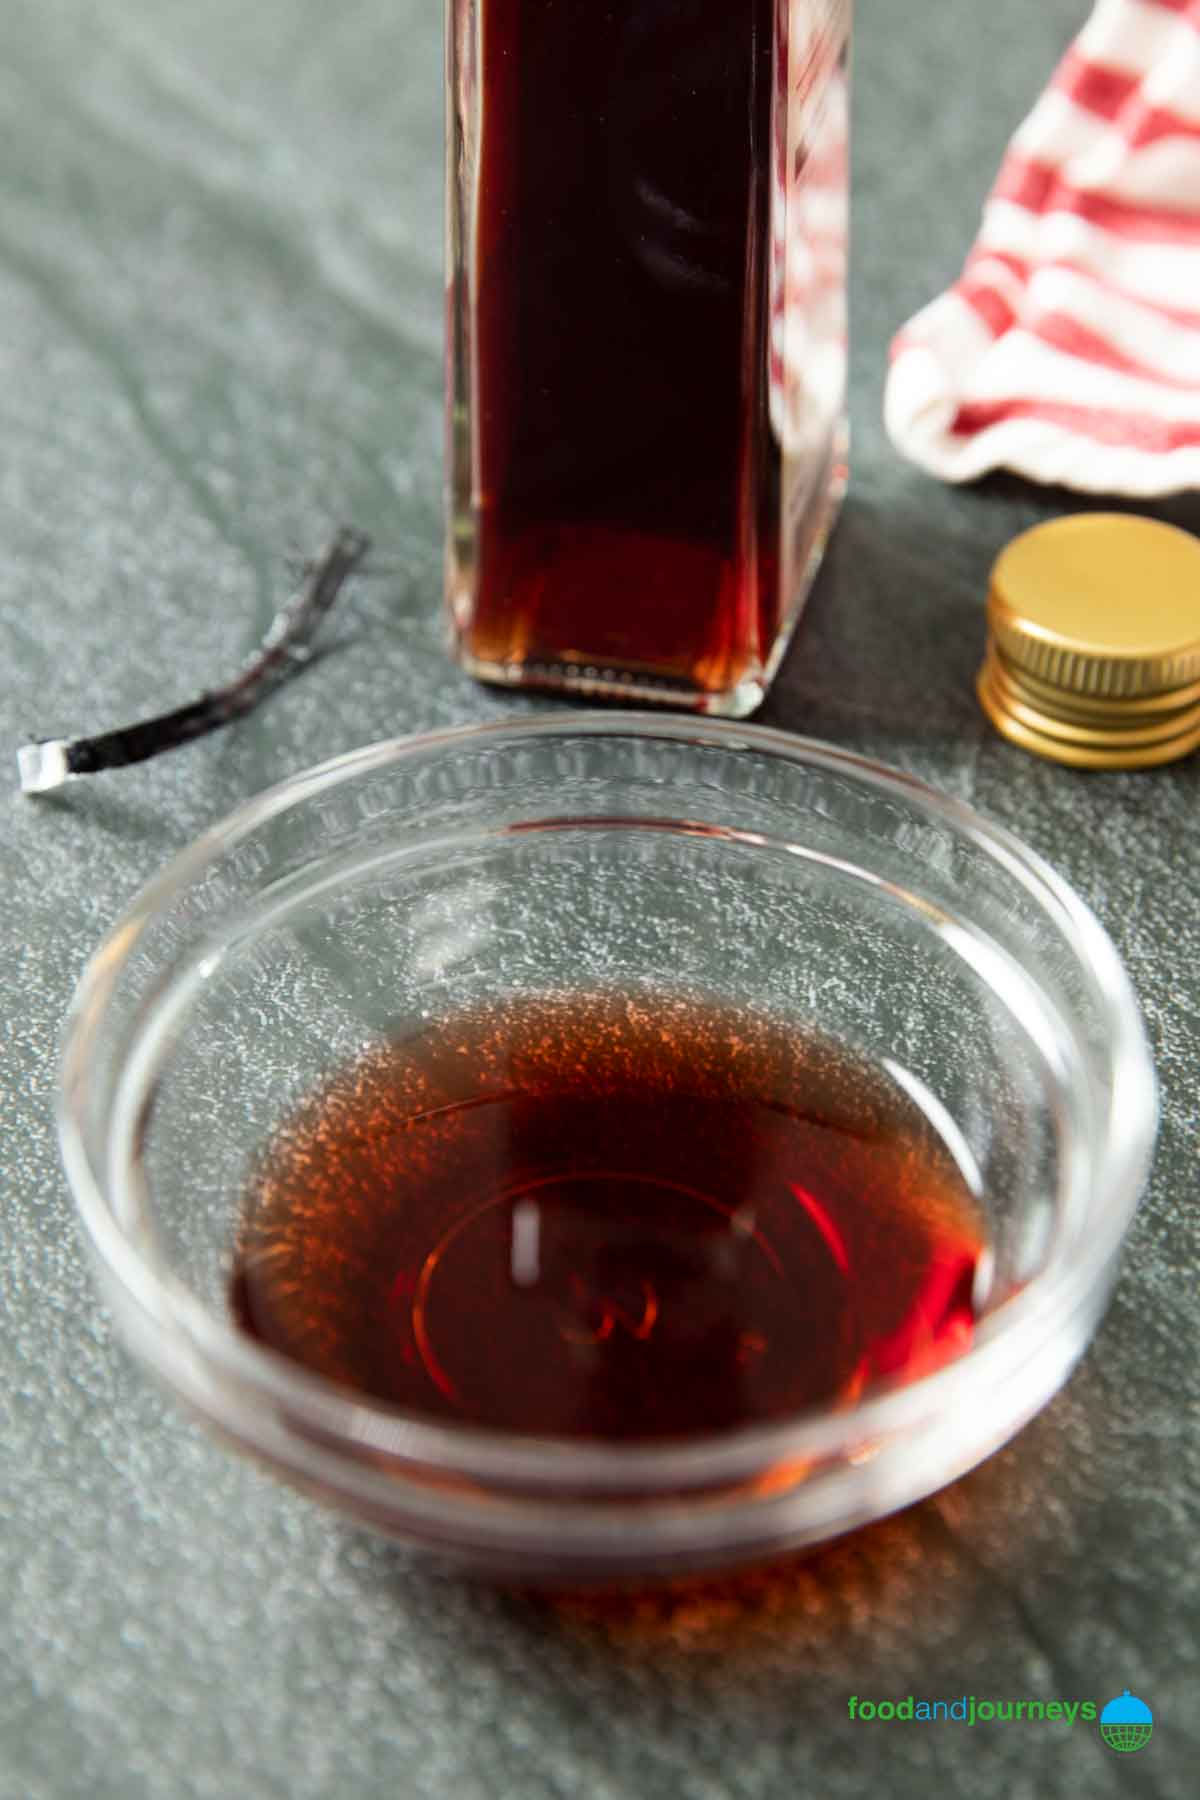 Red winee vinegar poured into a small bowl, with a bottle of it in the background.